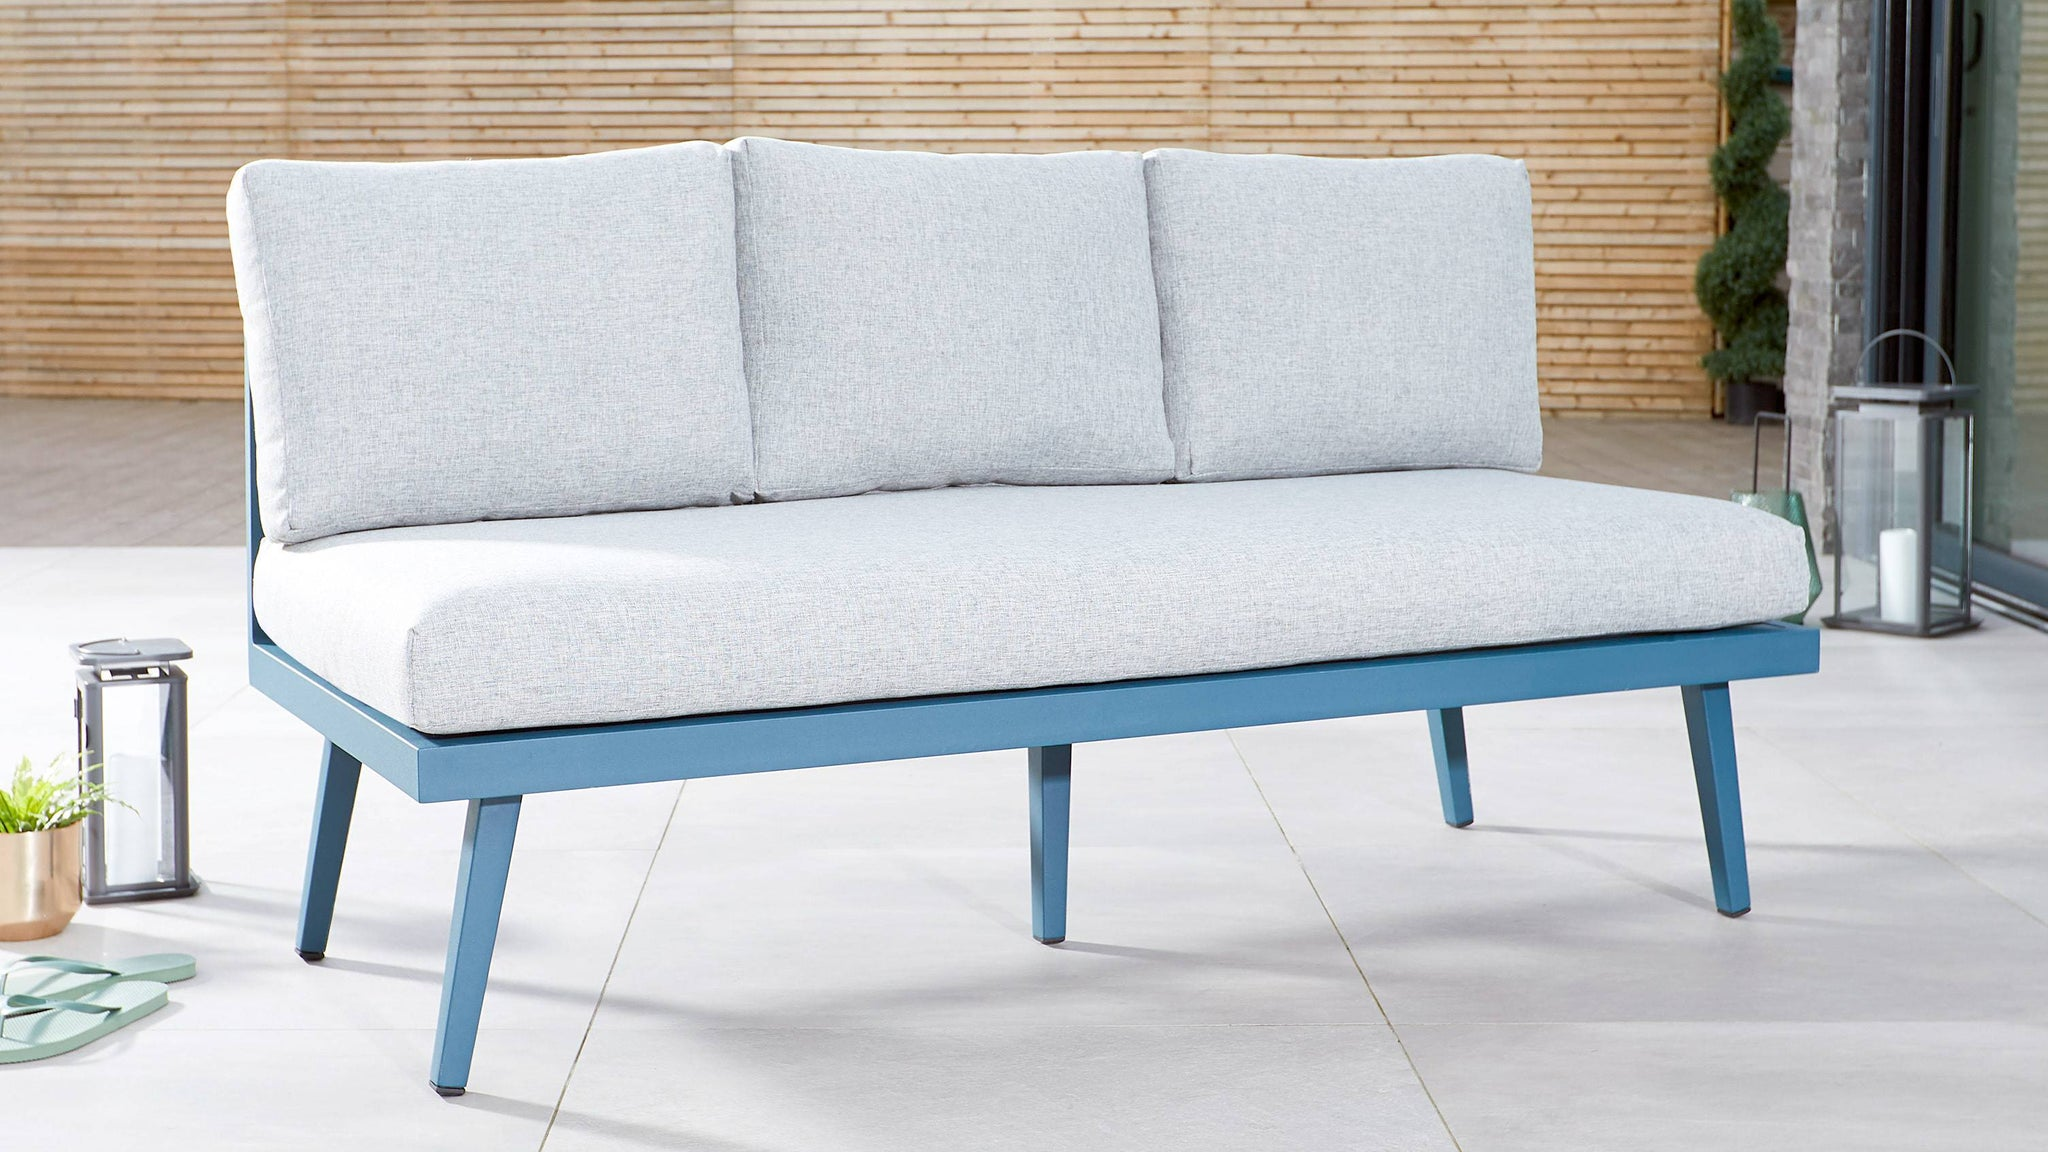 3 Seater blue garden bench